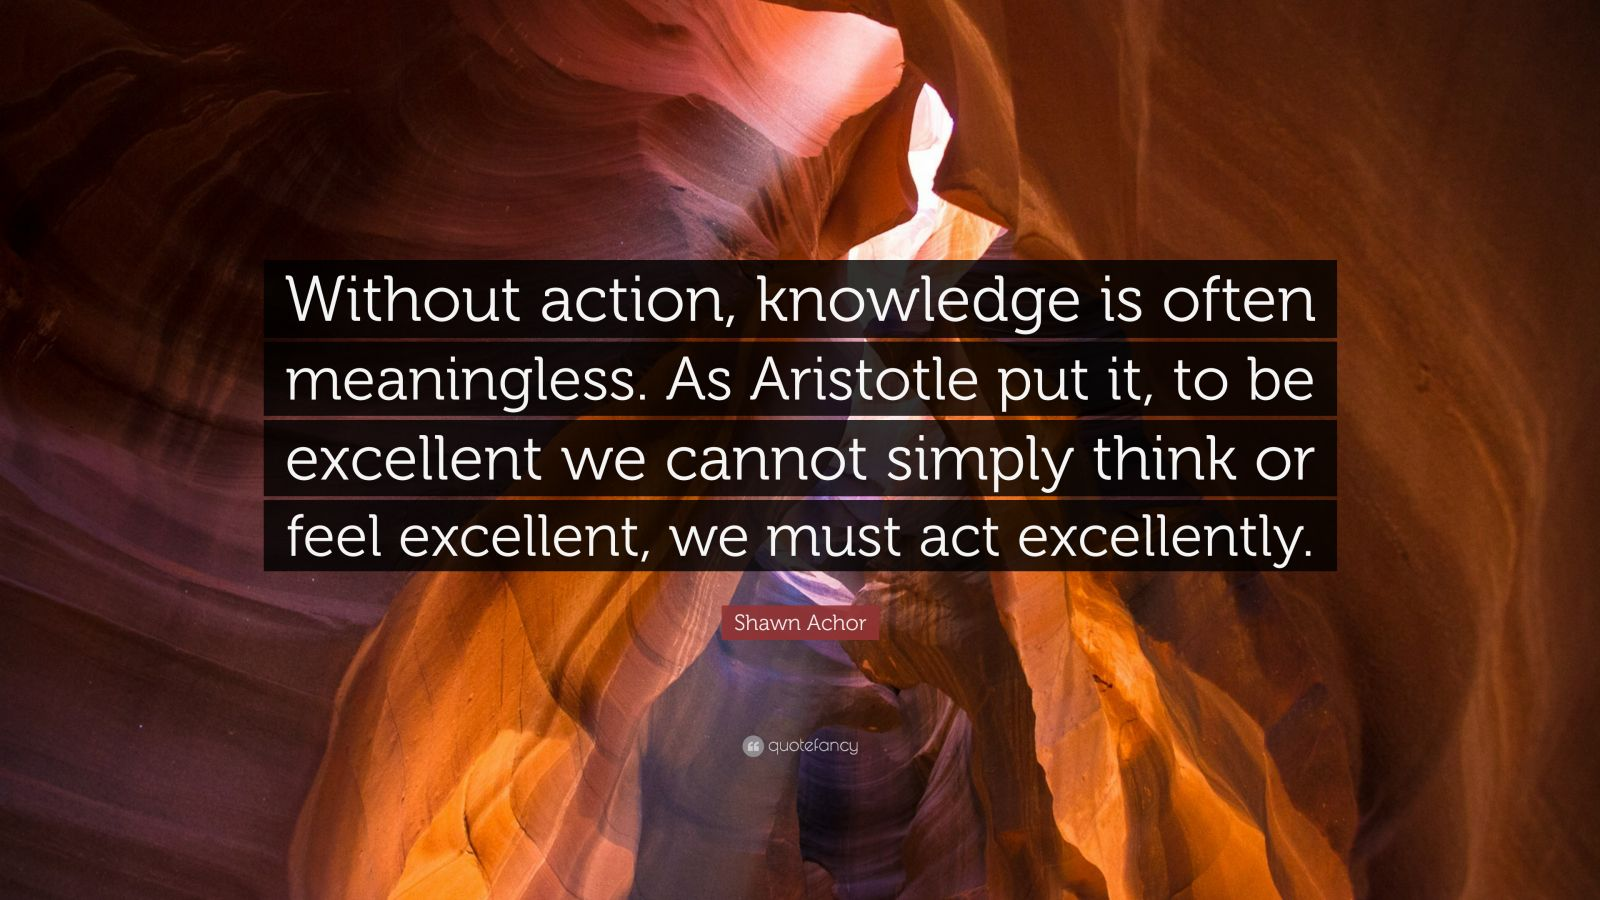 """Shawn Achor Quote: """"Without action, knowledge is often meaningless. As Aristotle put it, to be excellent we cannot simply think or feel excellent, we must act excellently."""""""